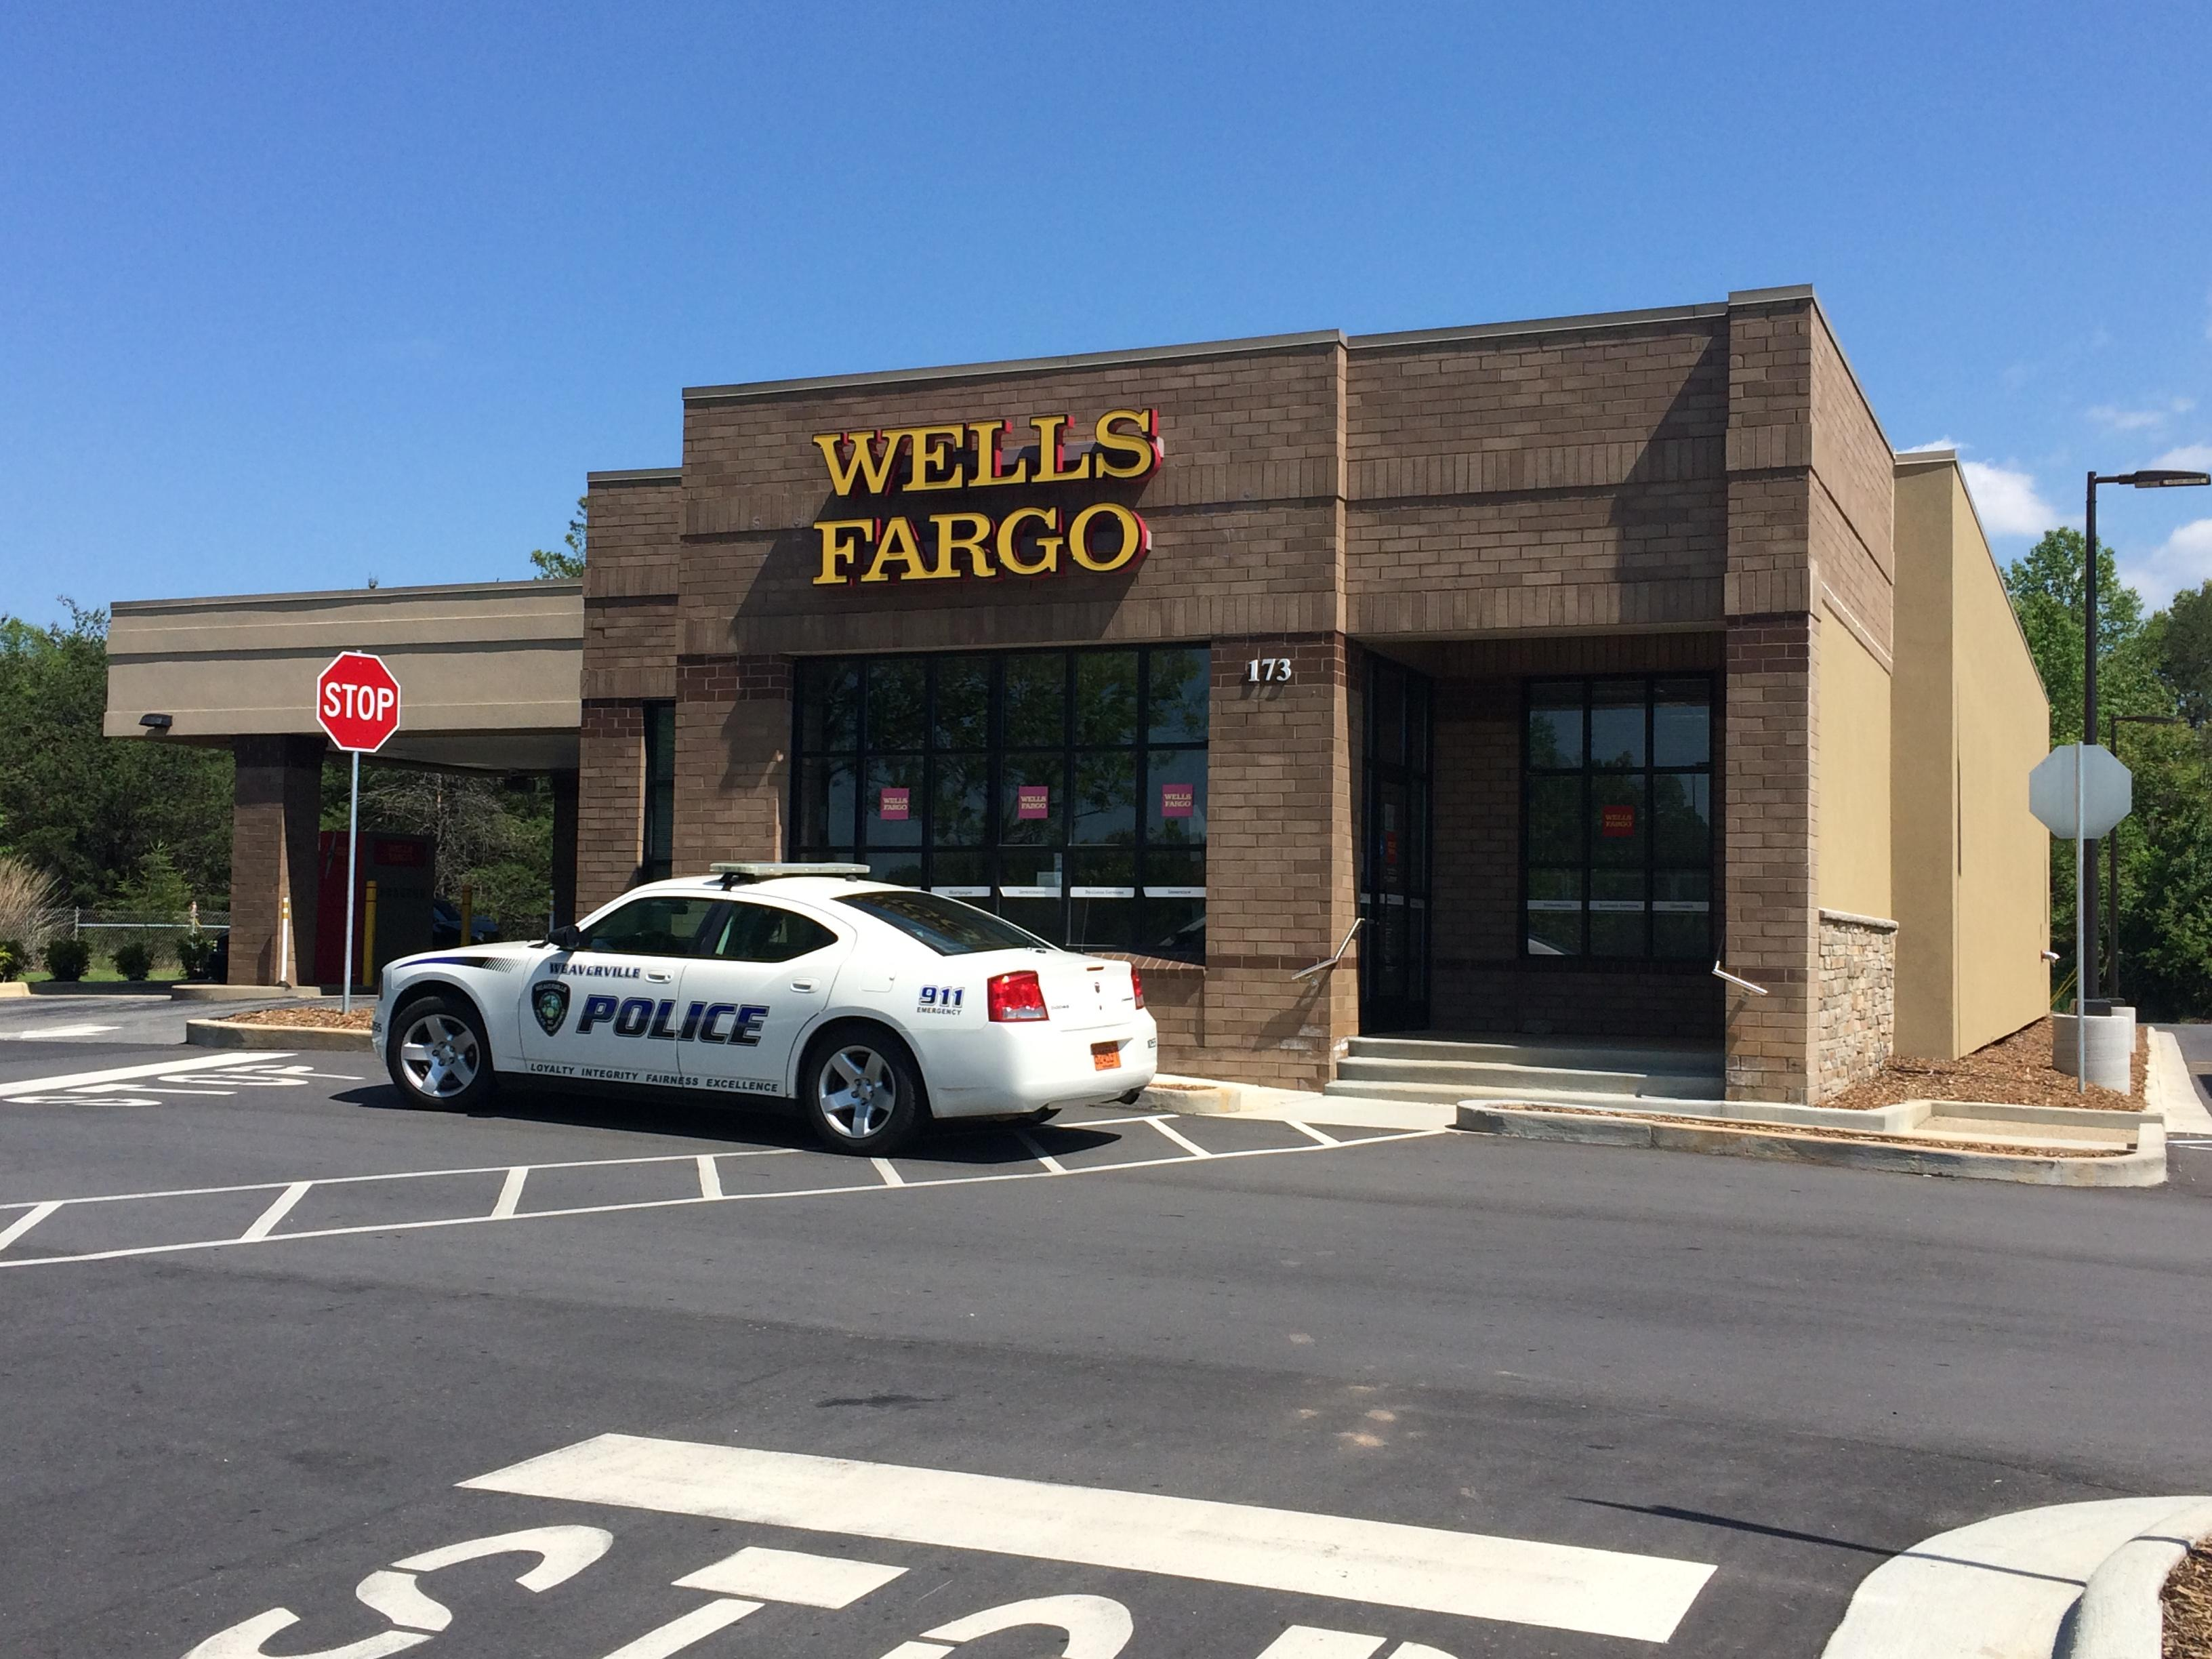 Police respond to a robbery at the Wells Fargo in Weaverville on Tuesday. (Photo credit: WLOS Staff)